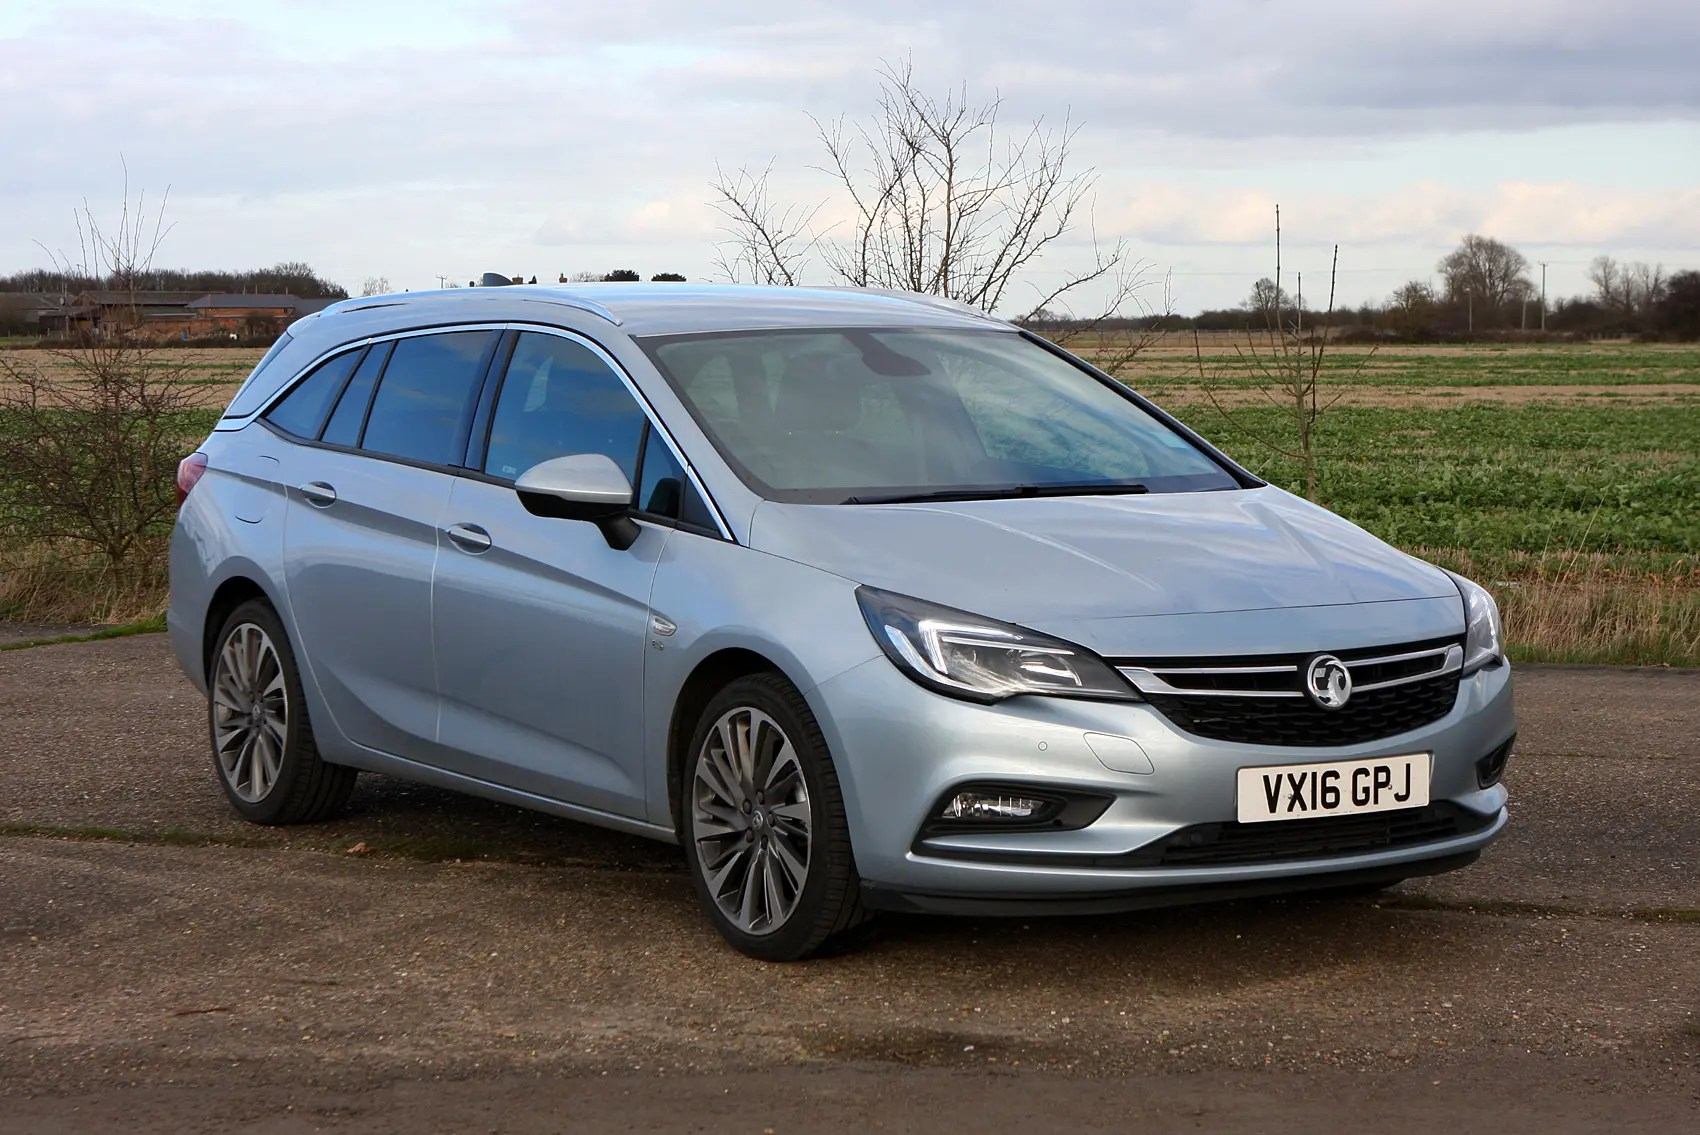 Vauxhall Astra Sports Tourer Vauxhall Astra Sports Tourer Review Parkers